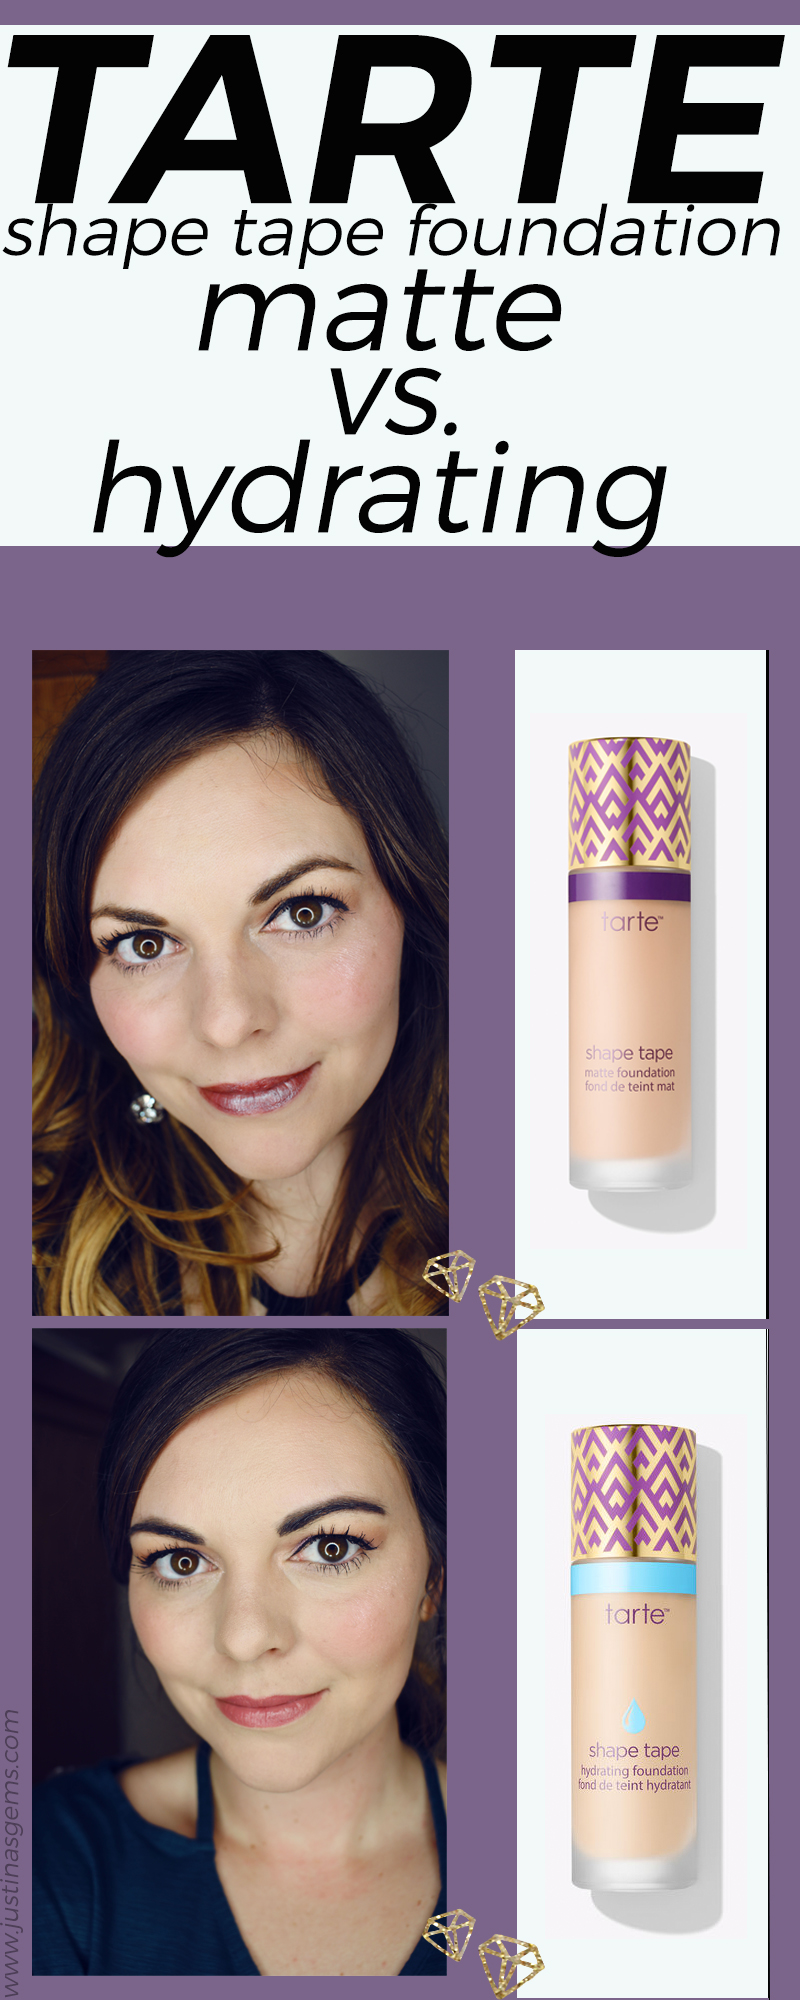 Comparing Shape Tape Matte and Hydrating Foundations by Tarte Cosmetics on fair skin